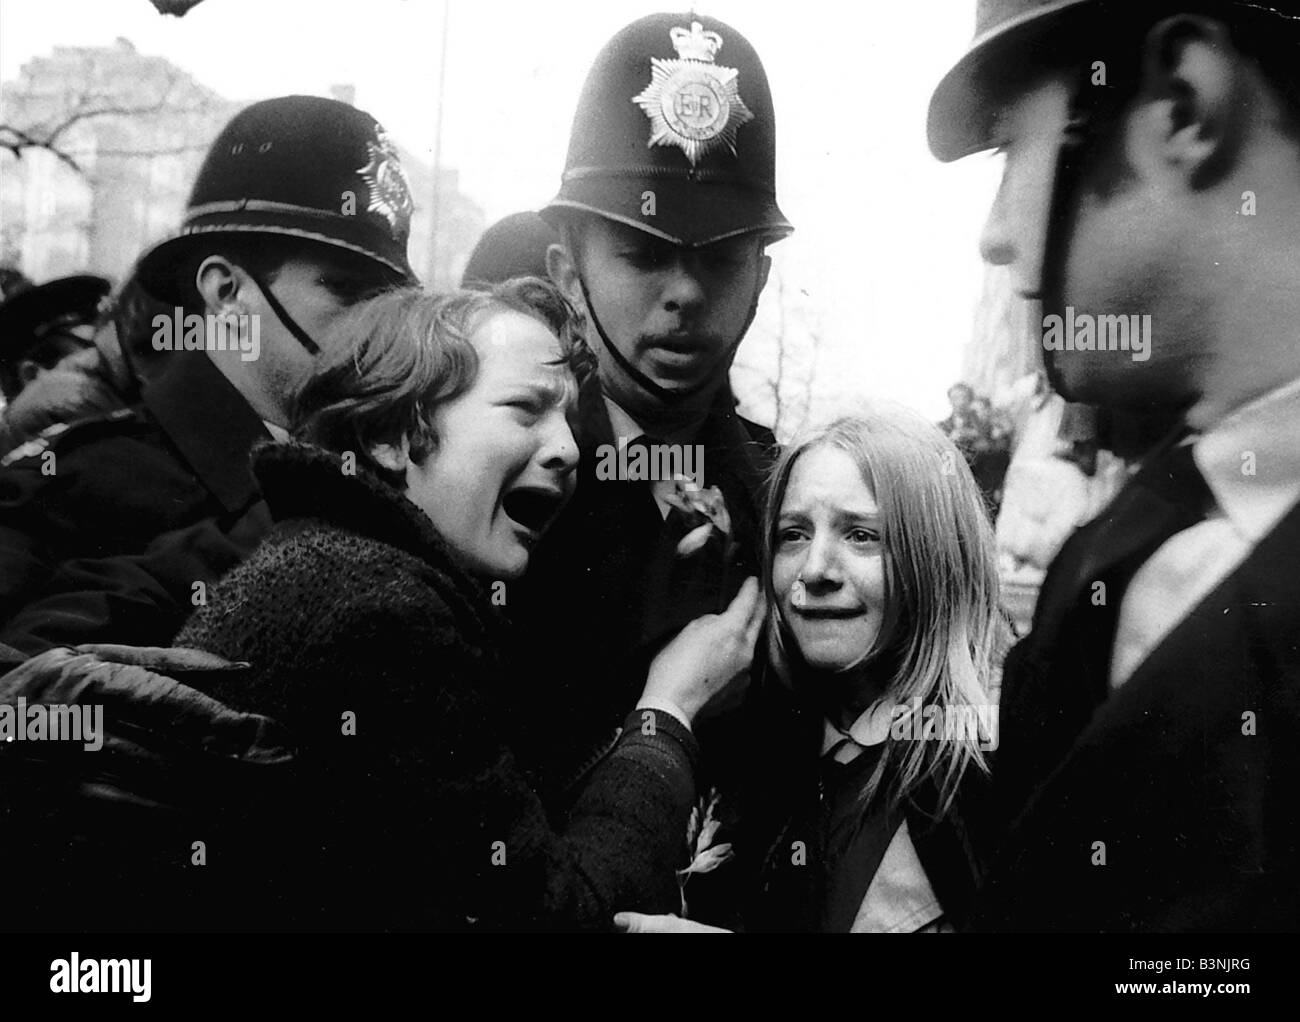 Upset Beatles fans crying because Paul McCartney got married are led away by police March 1969Stock Photo